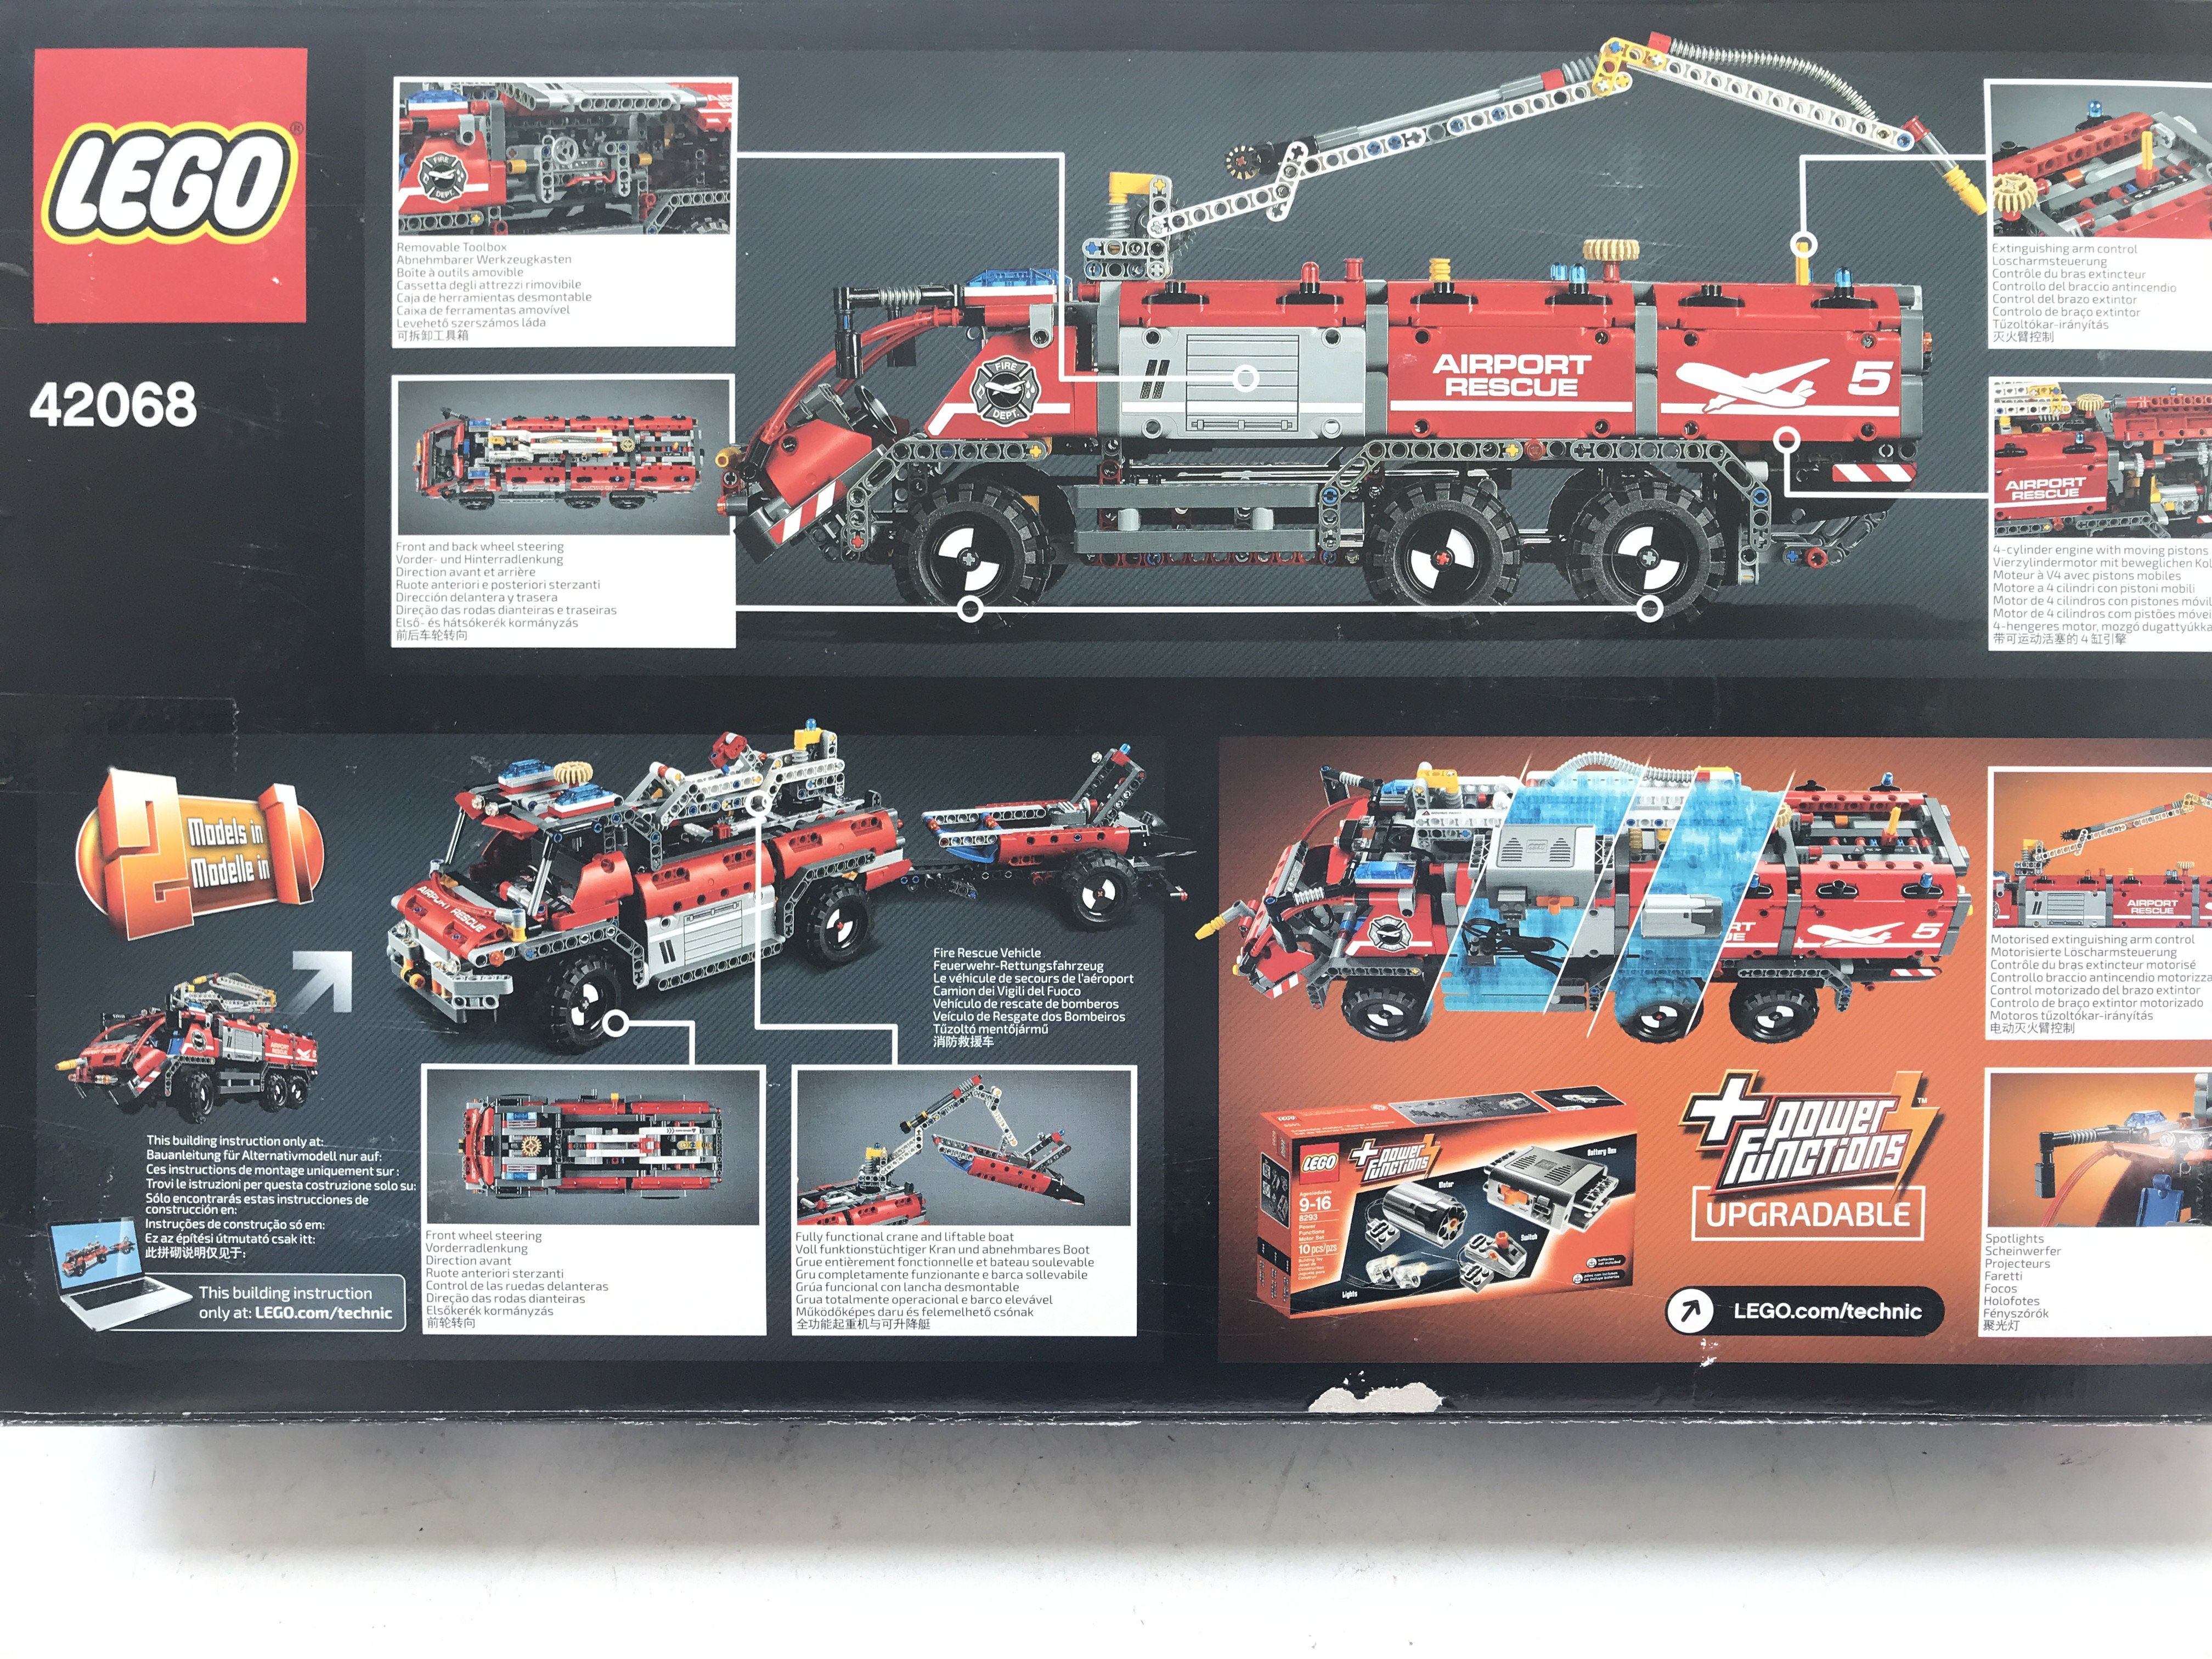 A Boxed Lego Technic Airport Rescue Vehicle #42068 - Image 2 of 2